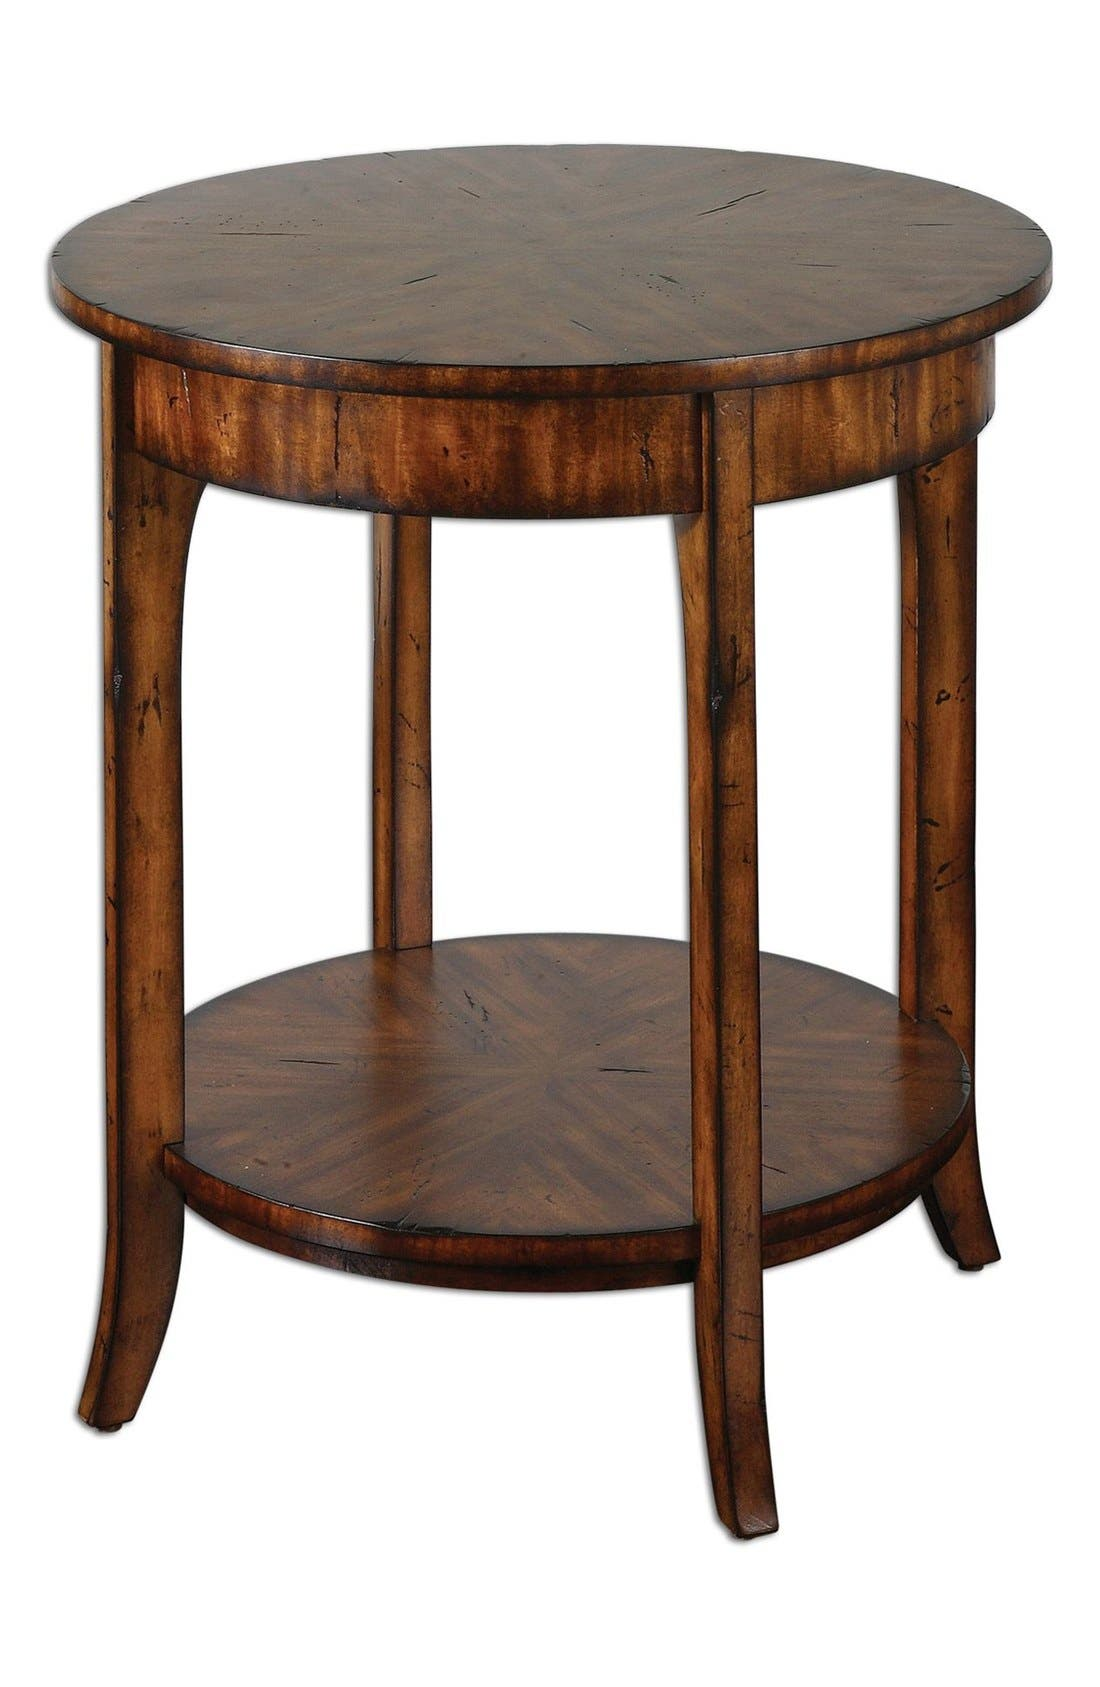 Alternate Image 1 Selected - Uttermost 'Carmel' Distressed Wood End Table